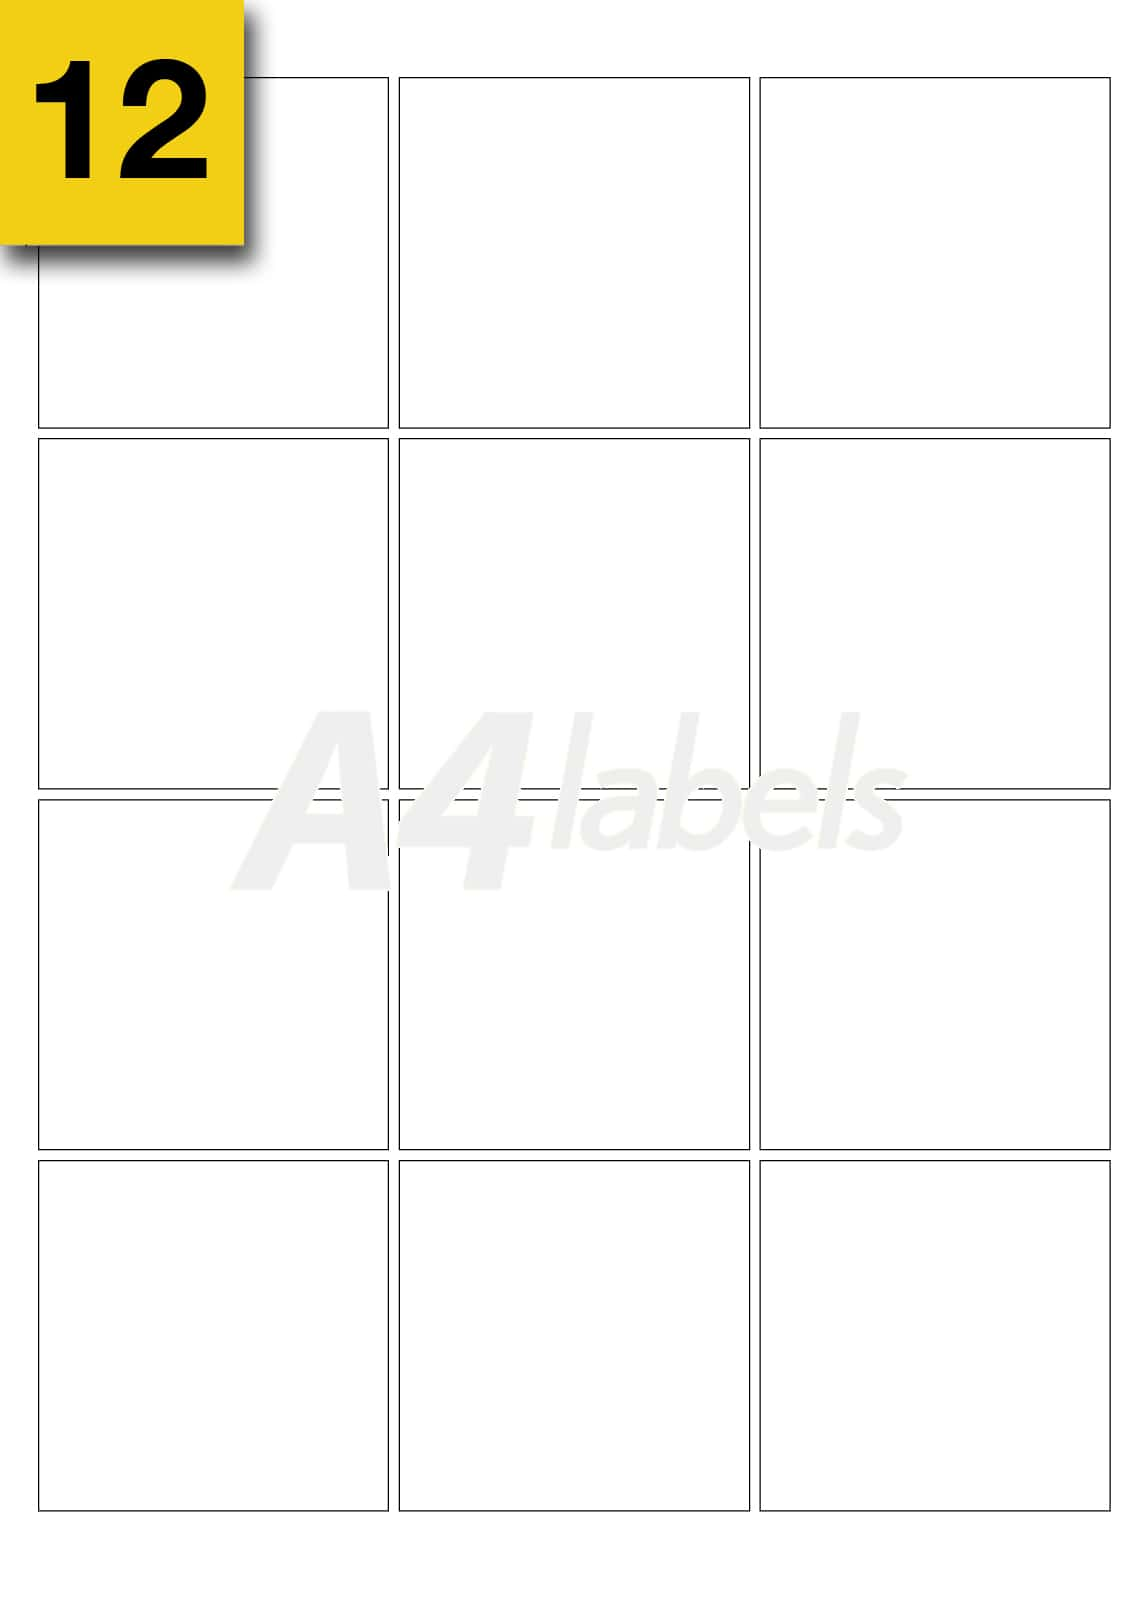 2 X 4 Label Template 10 Per Sheet And Round Label Template 4 Per Sheet